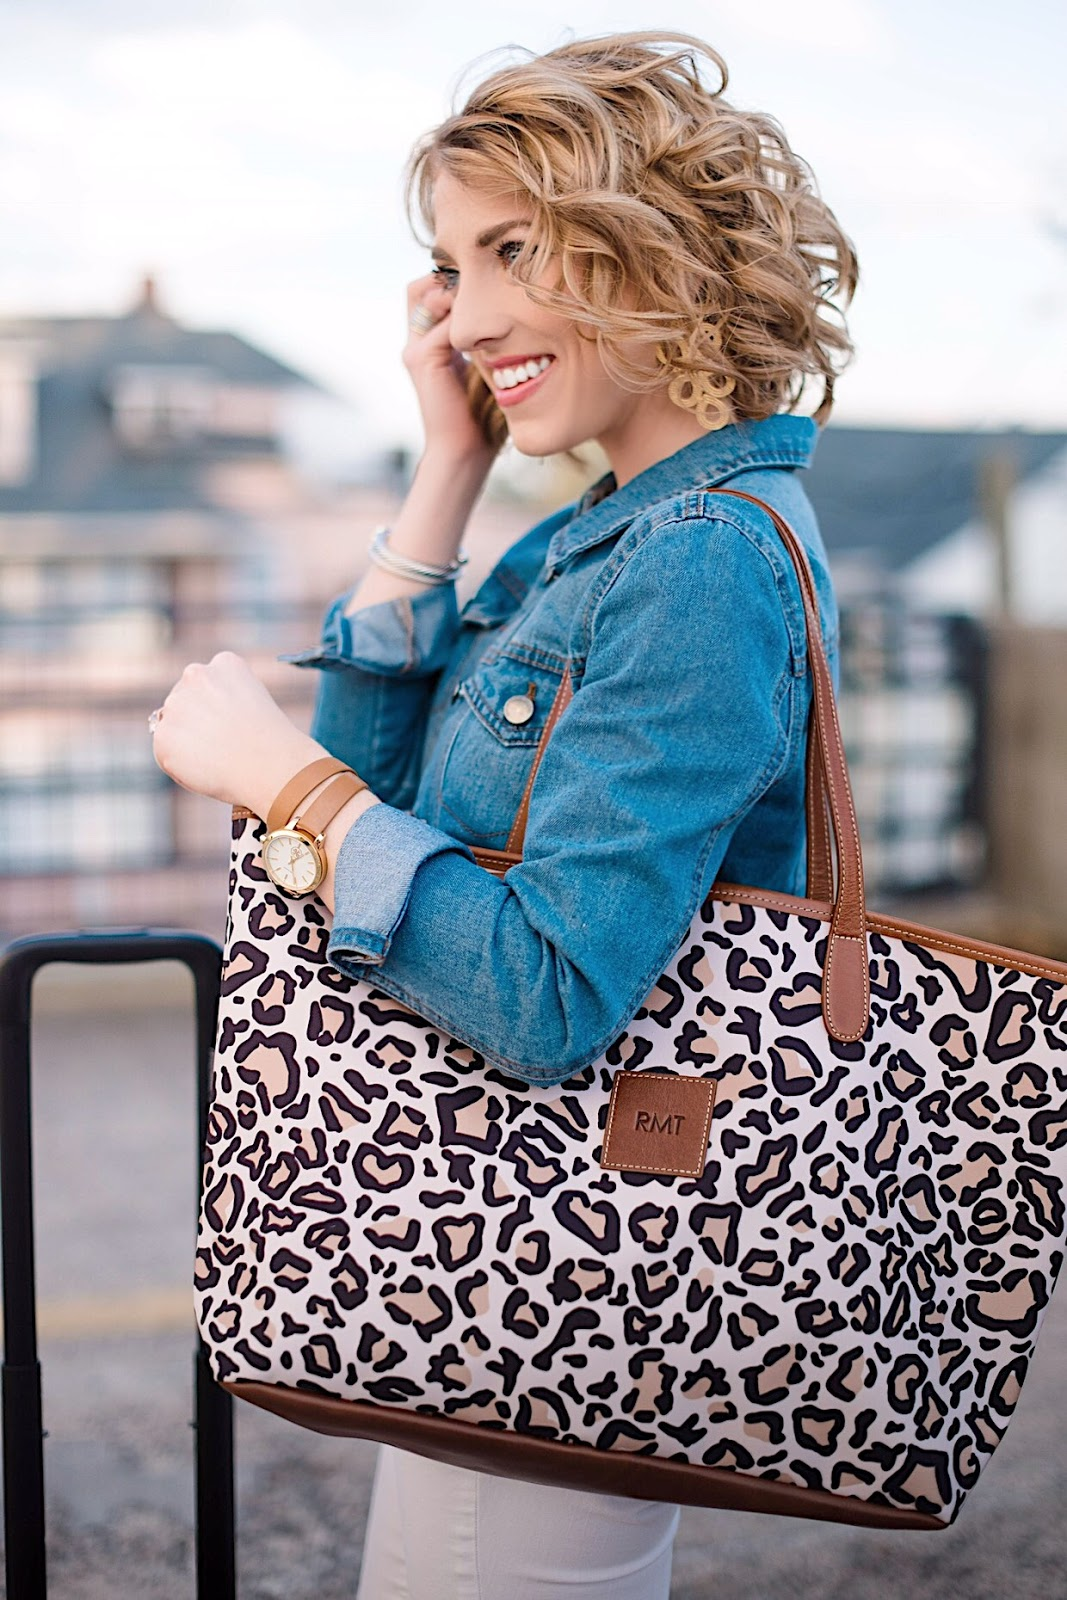 Barrington Gifts Leopard St. Anne Tote - Something Delightful Blog